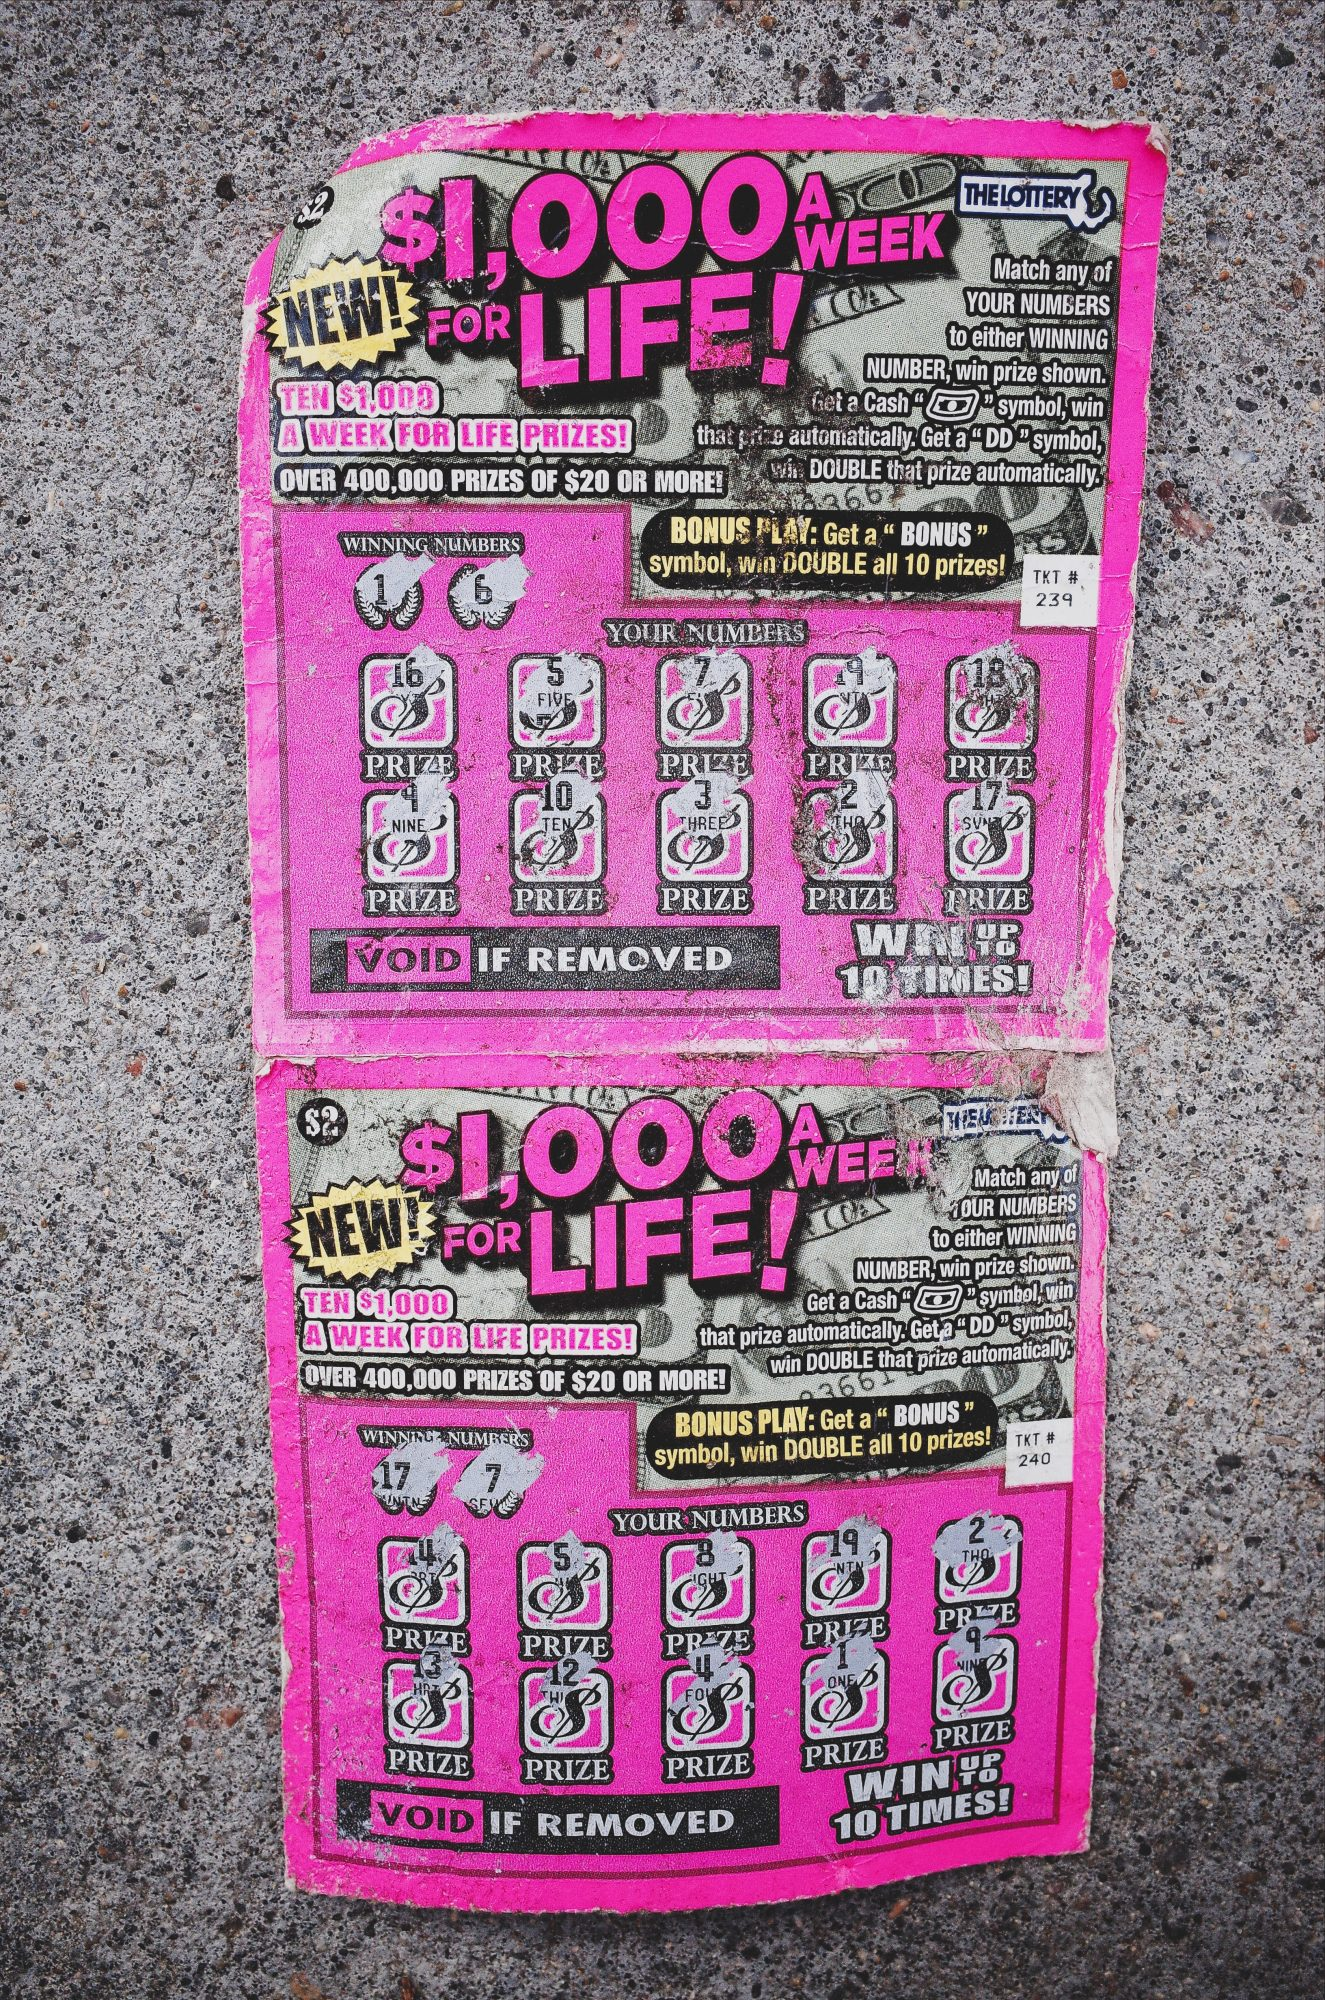 1,000 a day for life! Boston, 2018 // lottery scratcher